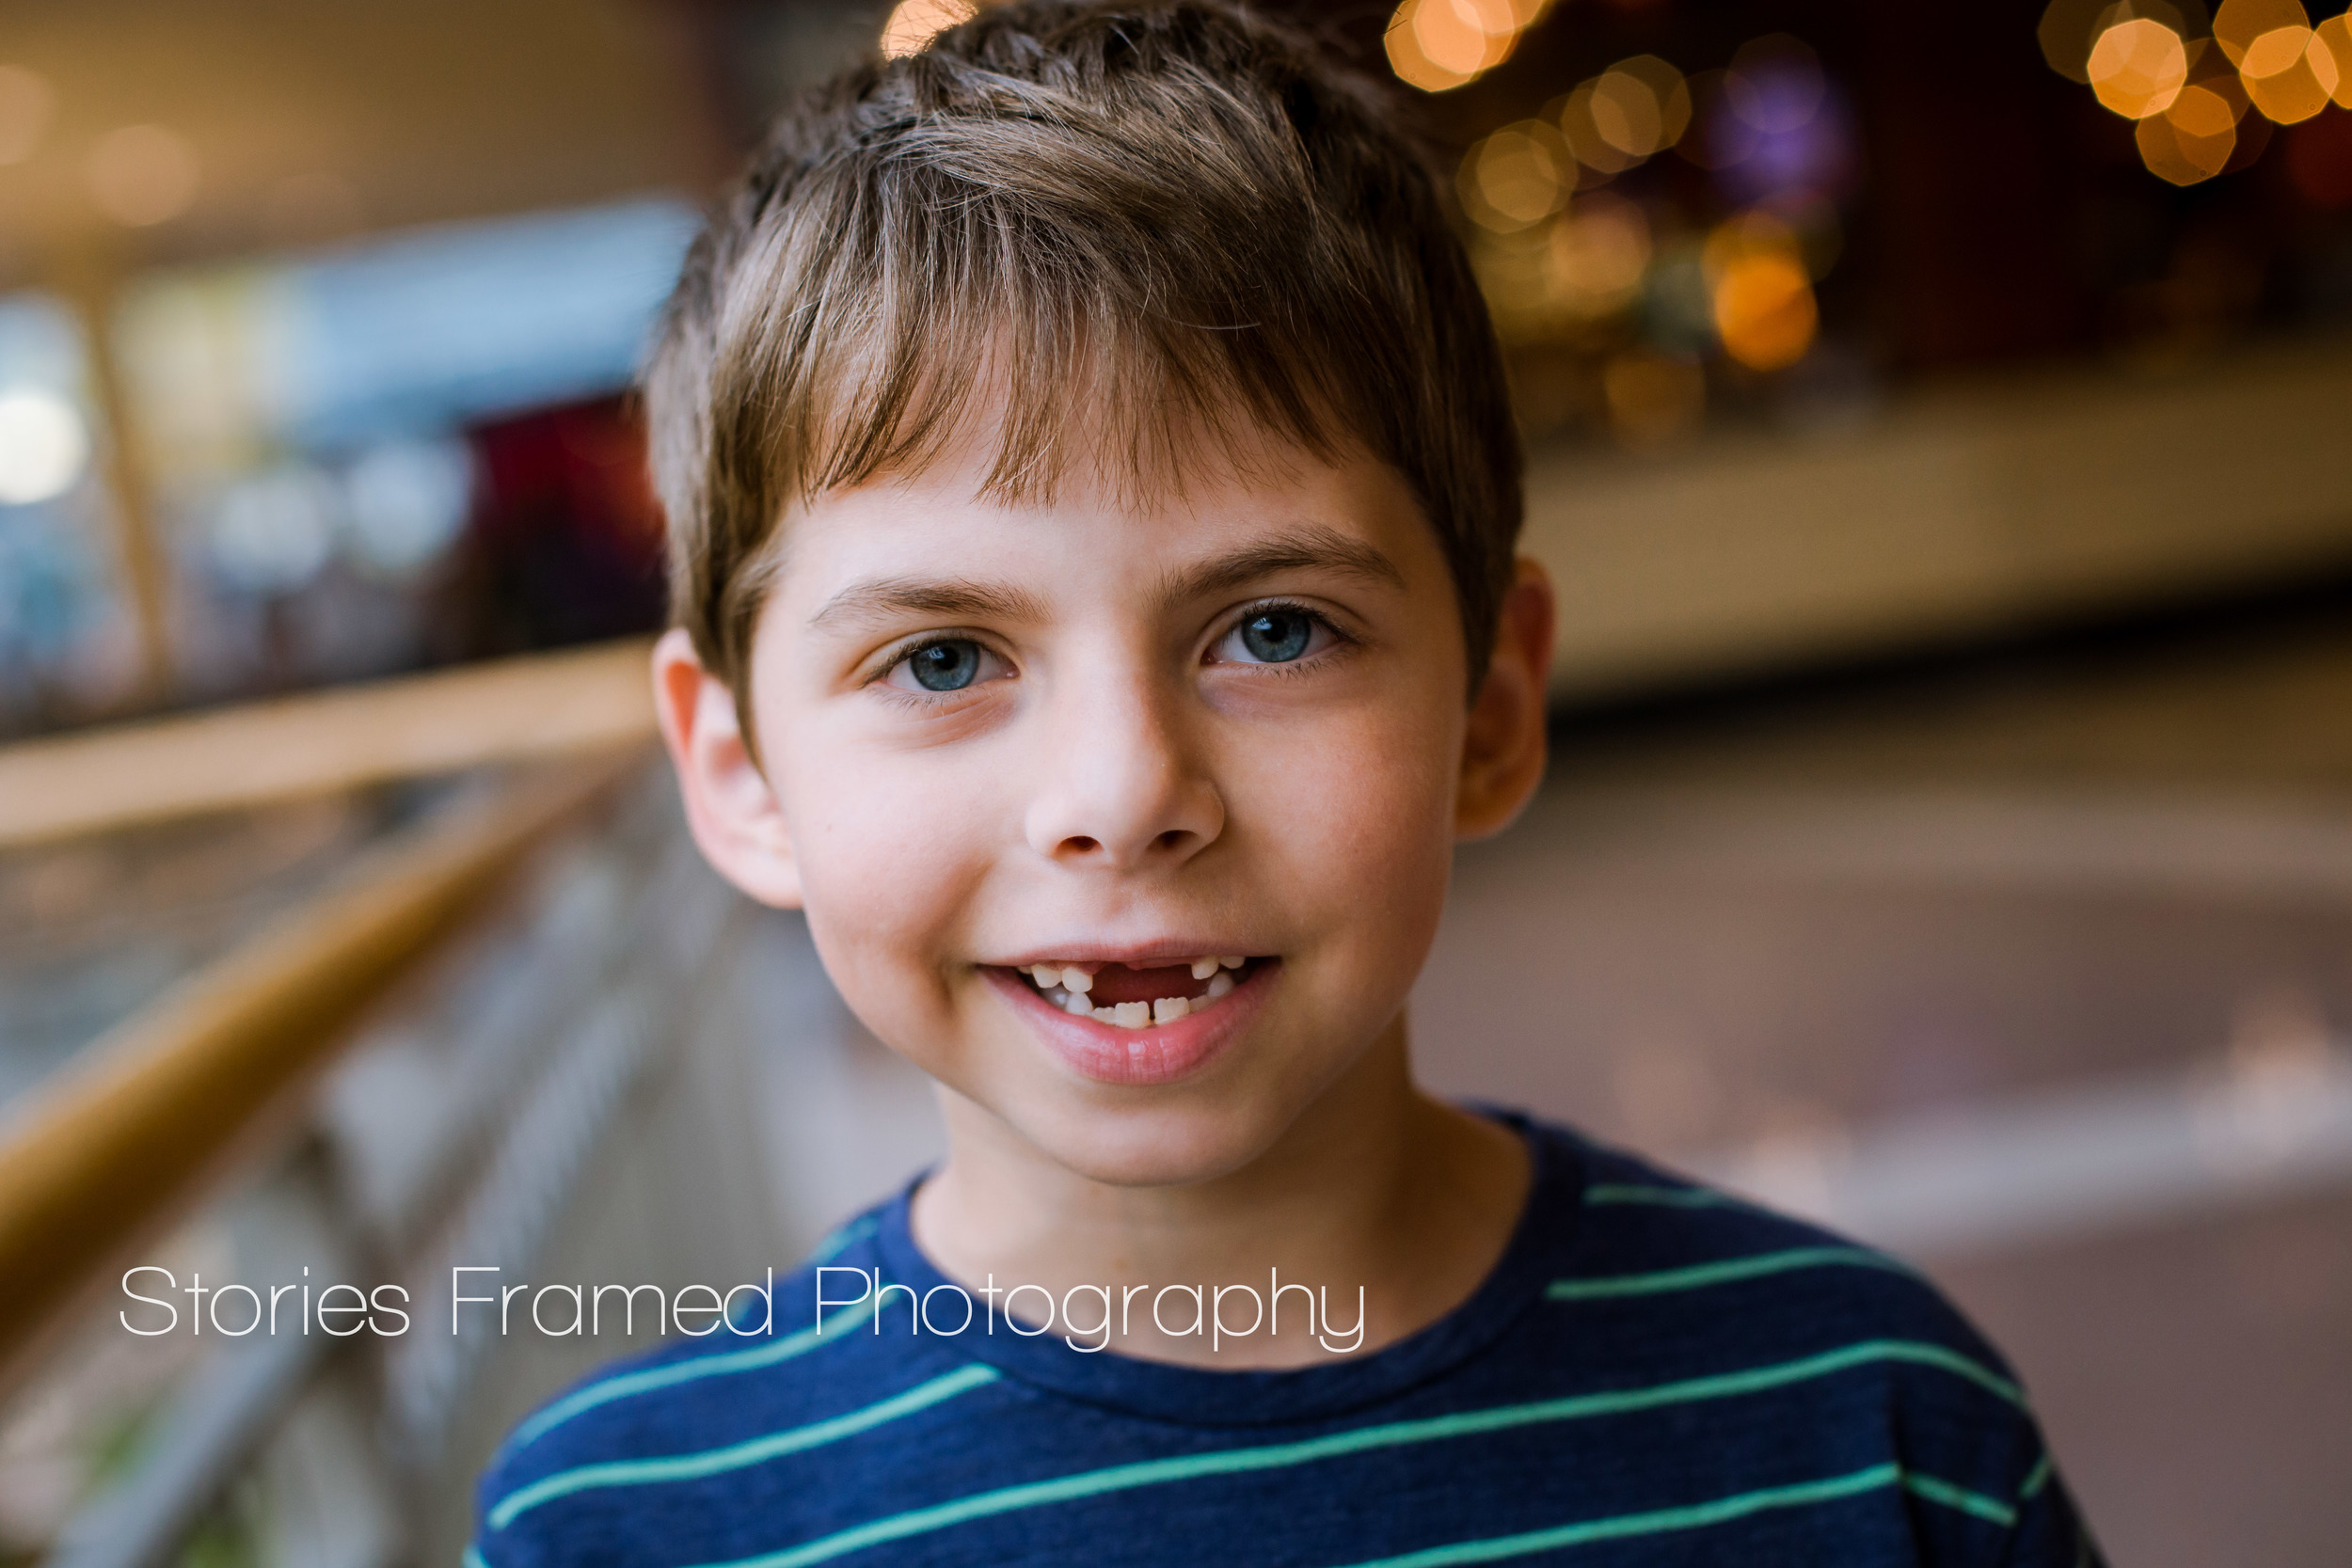 Stories Framed Photography | lost teeth | child portrait